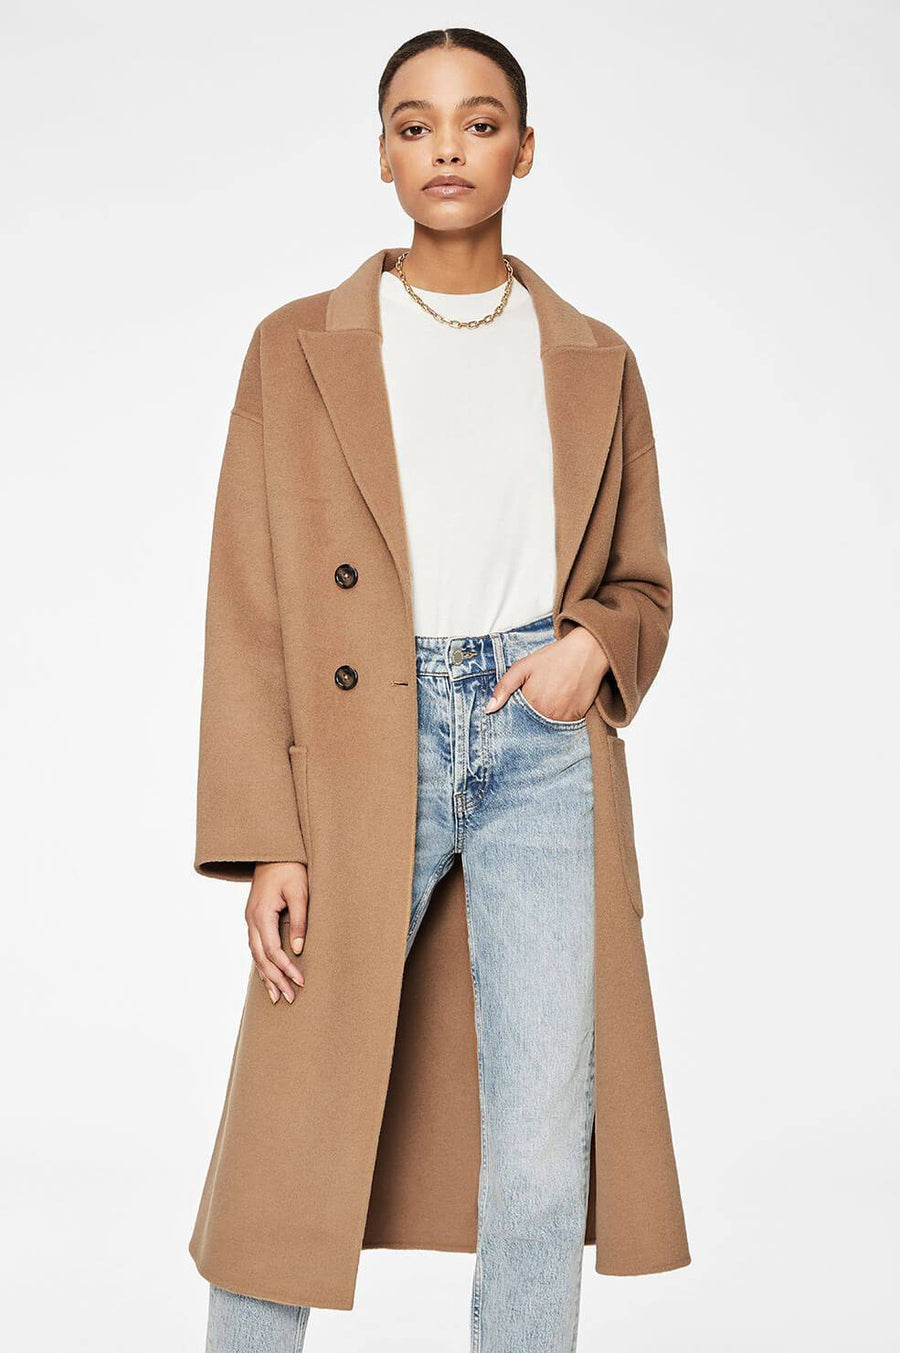 Anine Bing Dylan Camel Coat at The New Trend